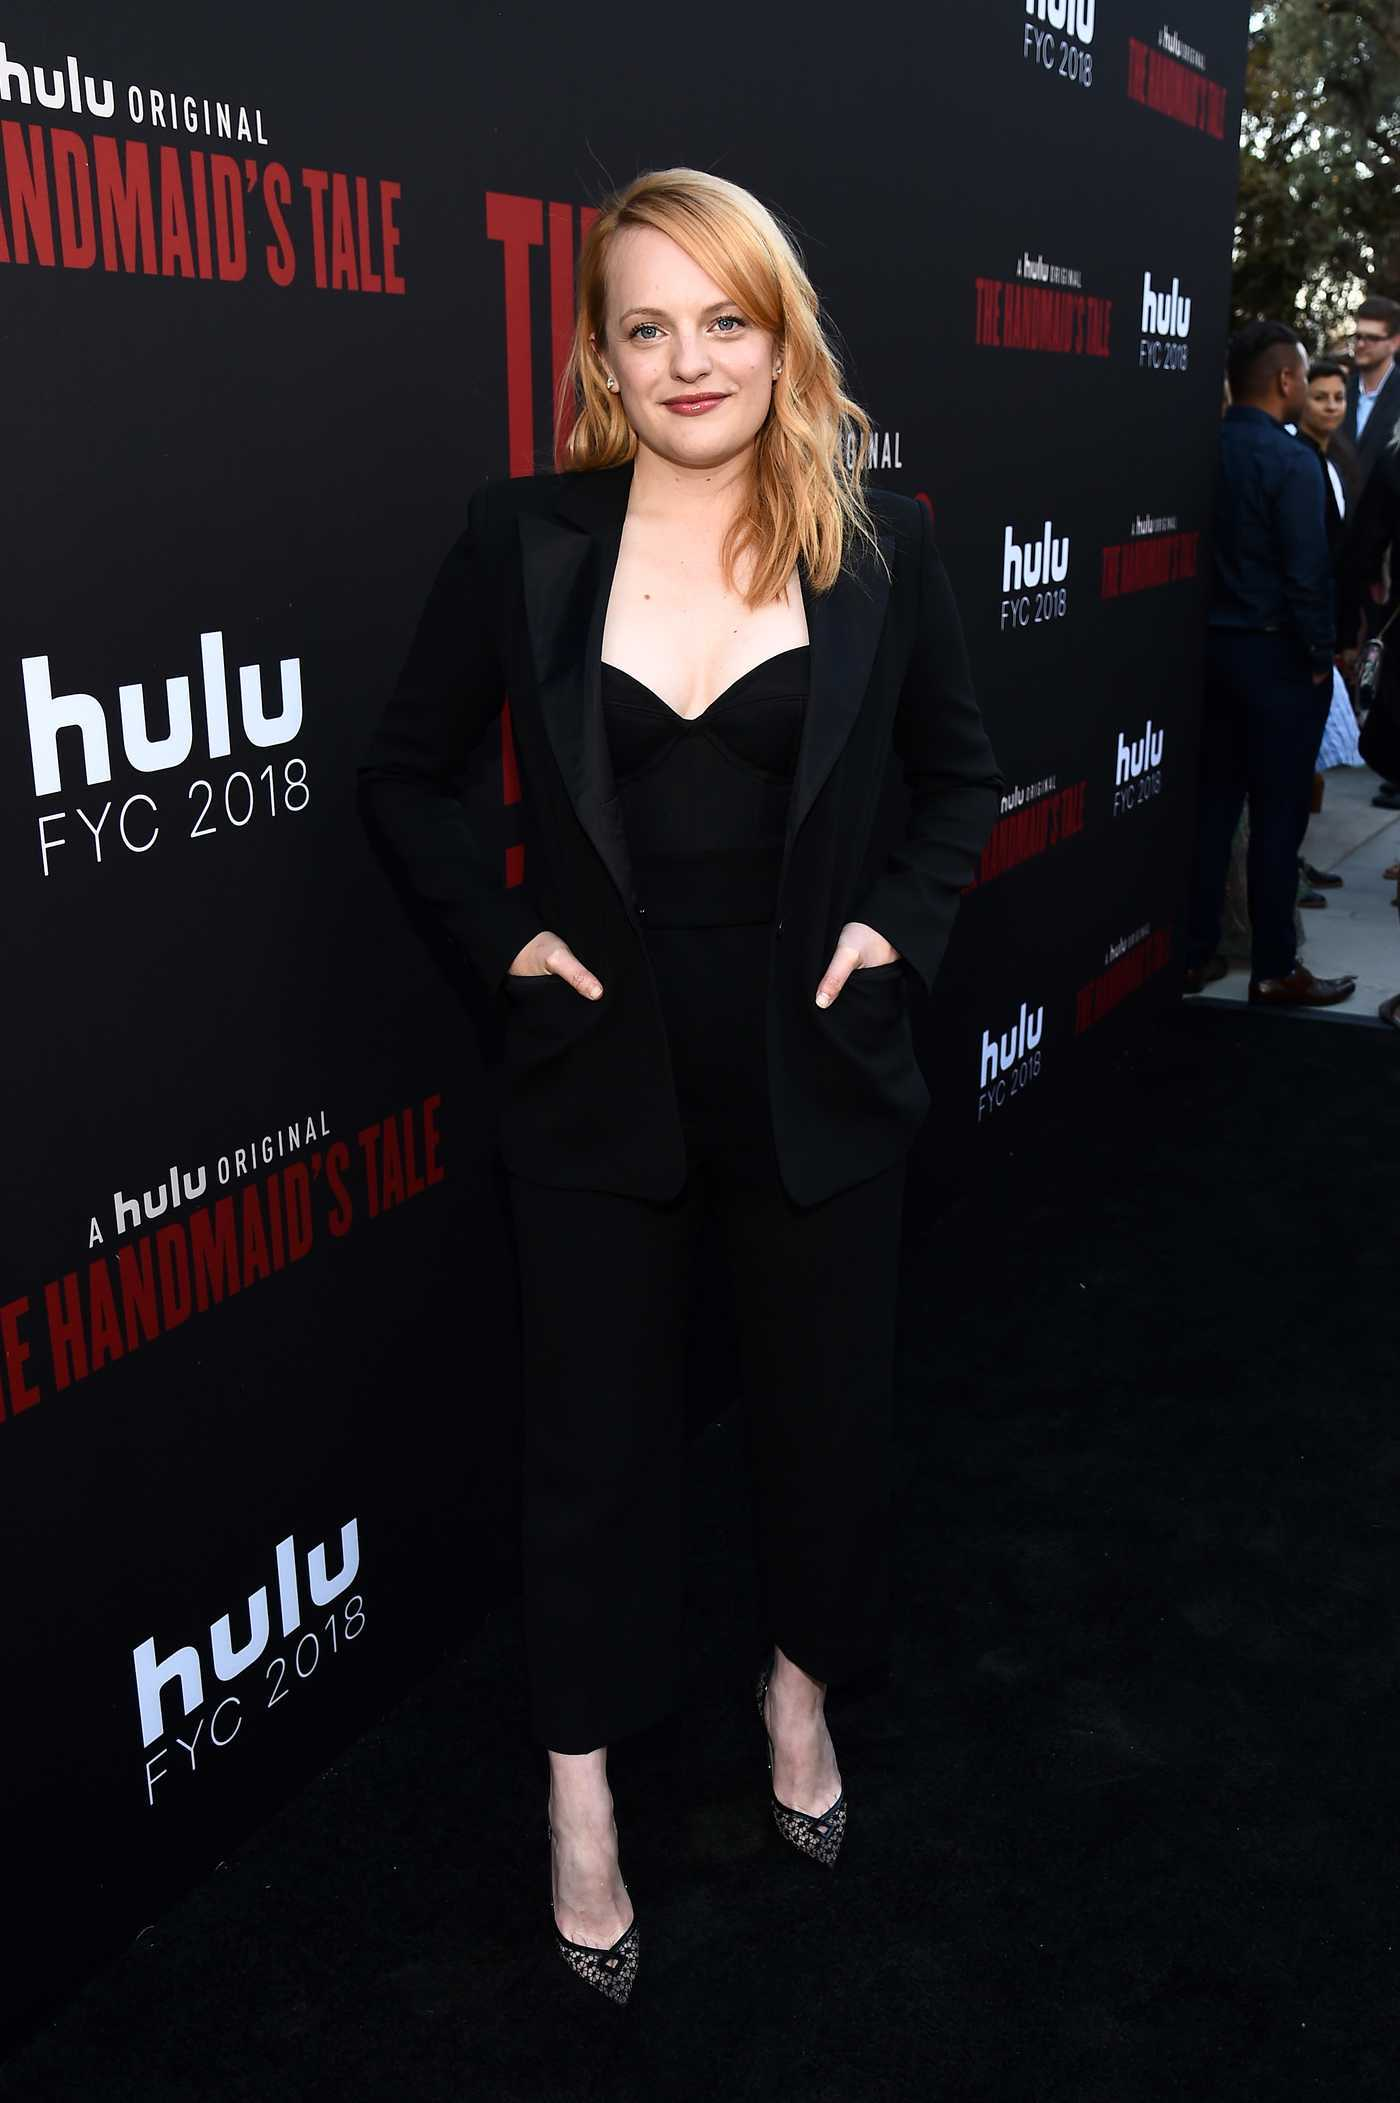 Elisabeth Moss Attends The Handmaid's Tale TV Show Finale in Los Angeles 07/09/2018